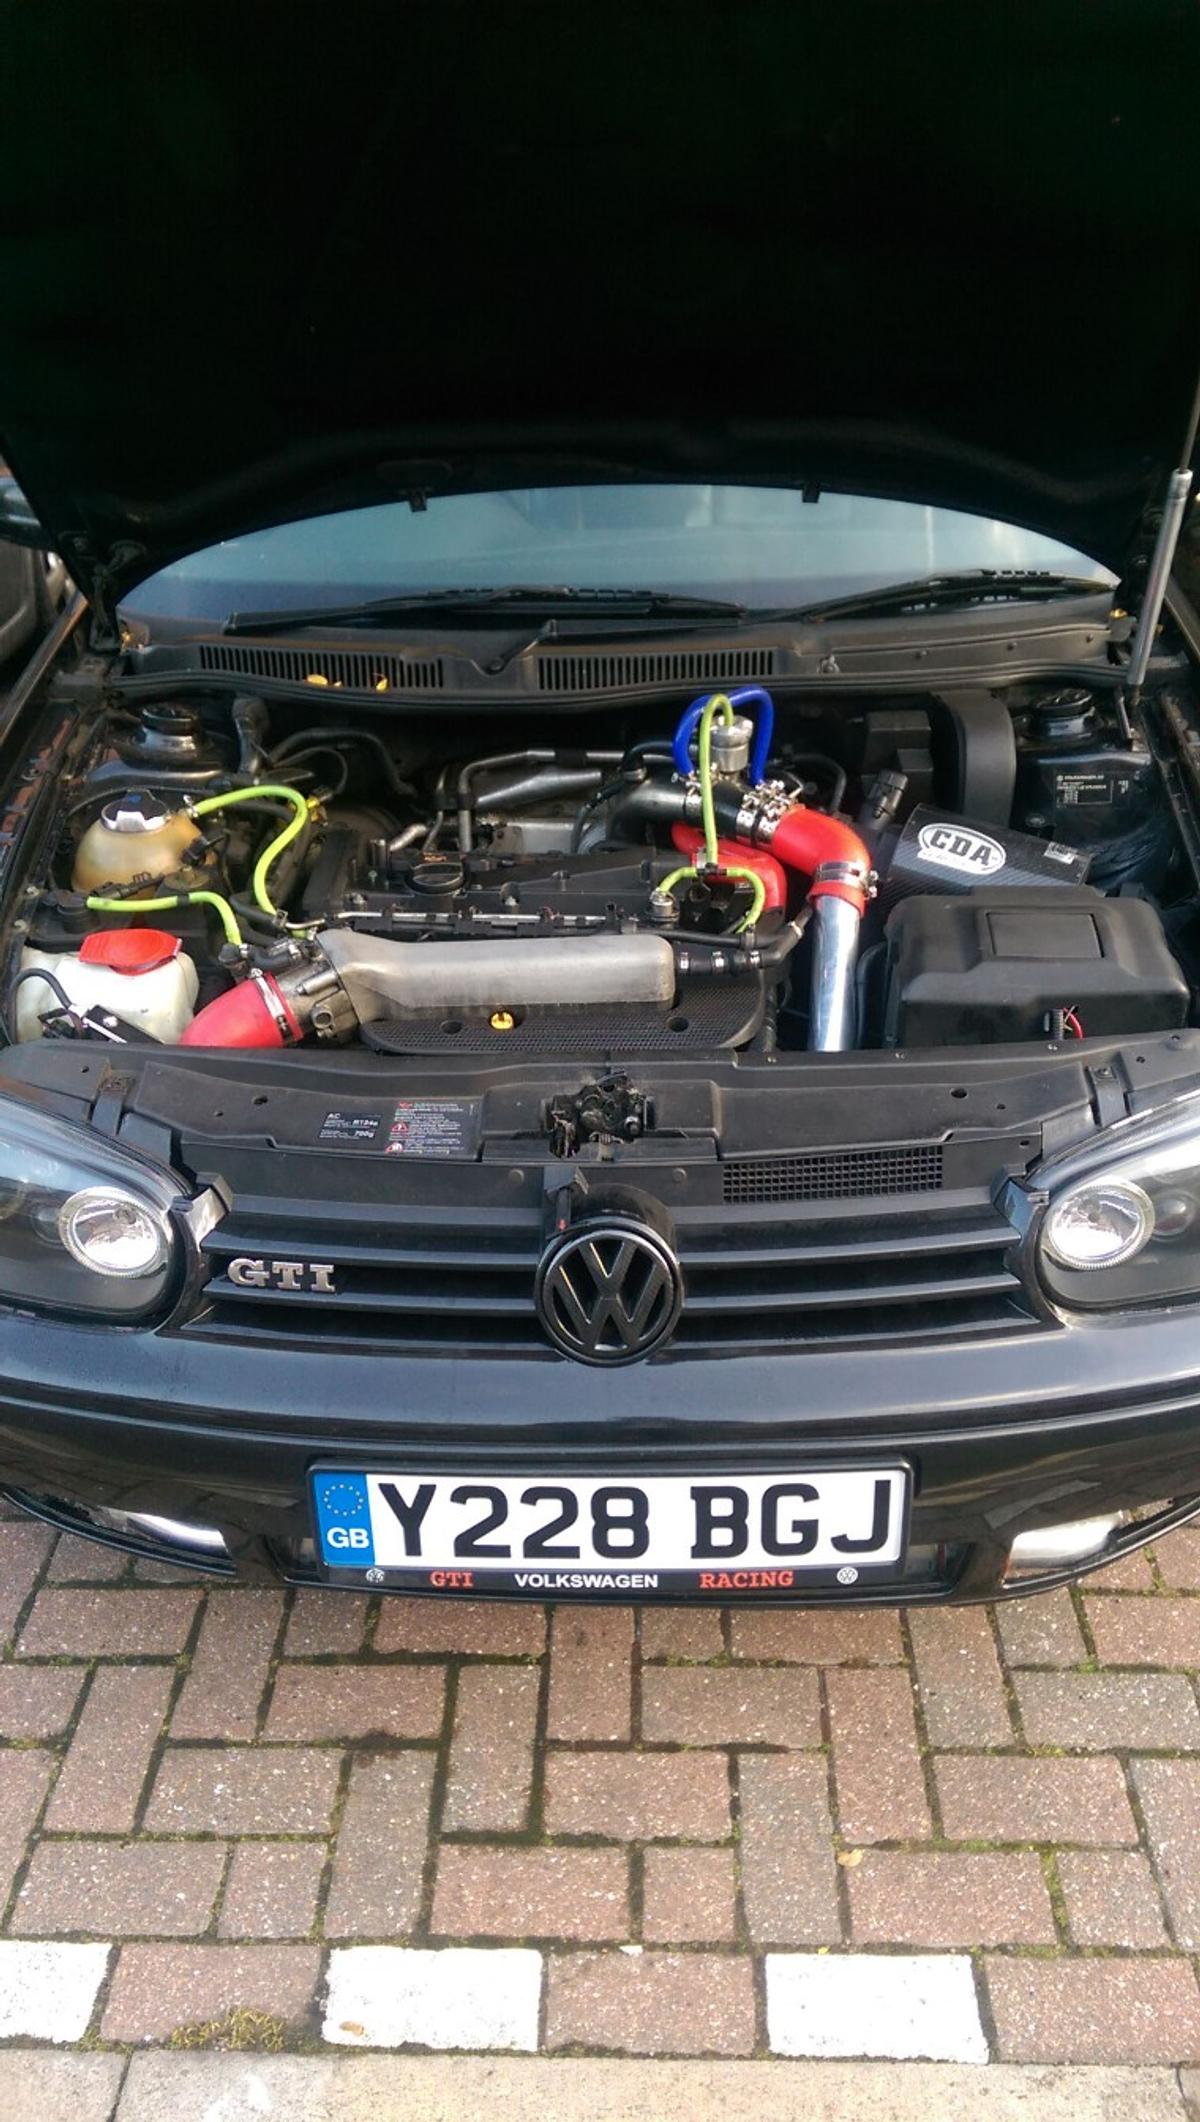 hight resolution of vw golf mk4 gti anniversary replica 1 8t